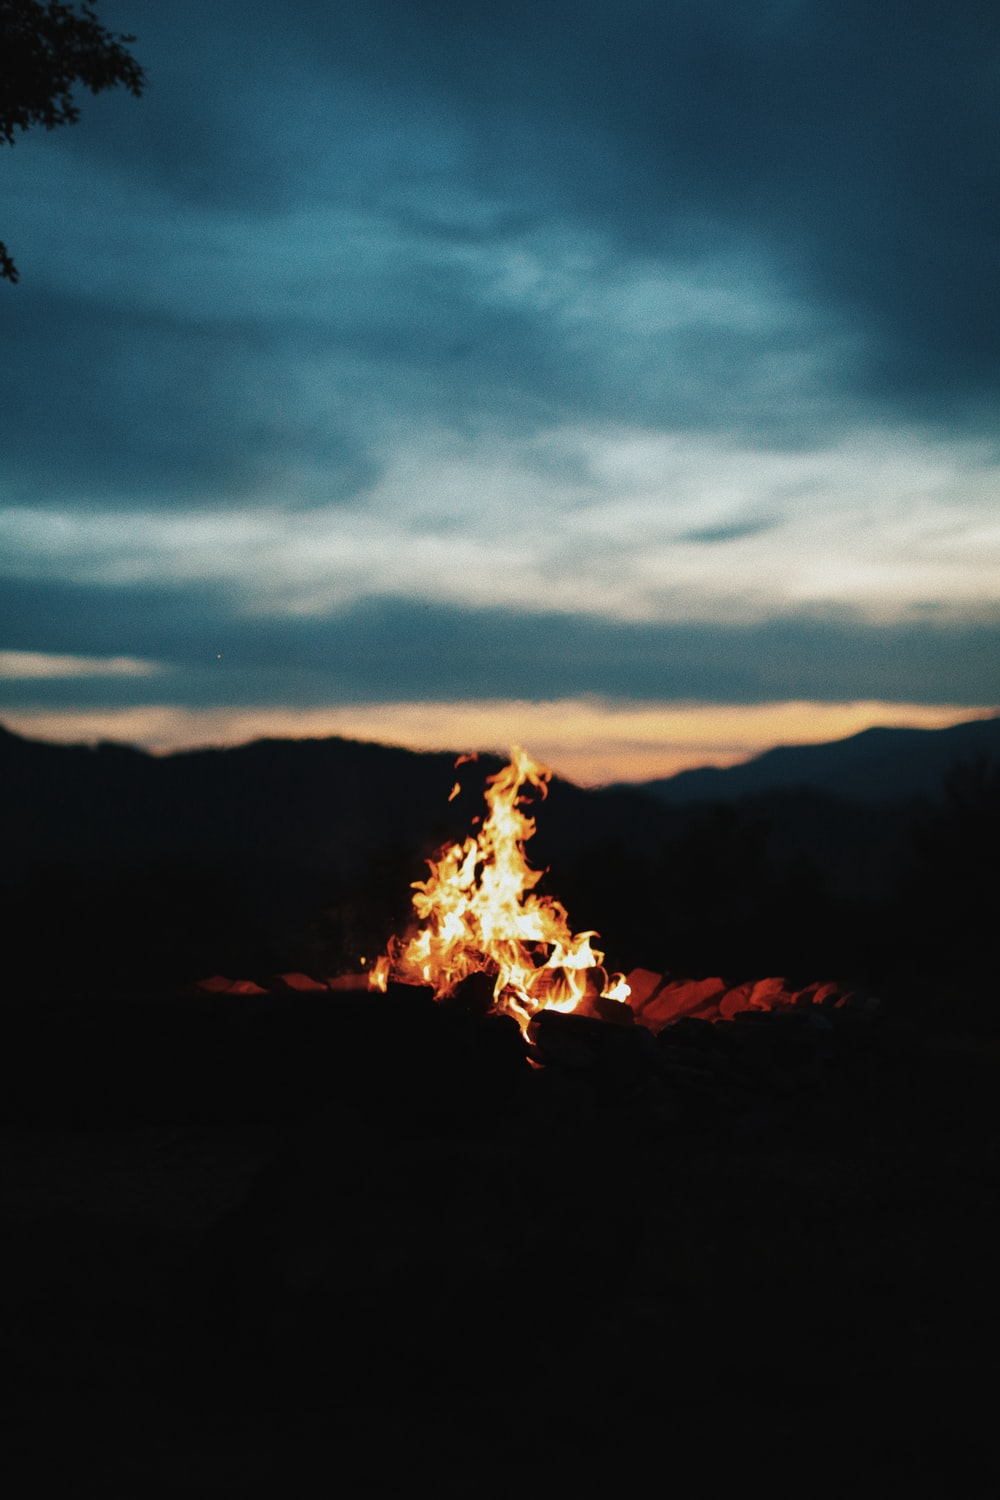 photography of bonfire during nighttime